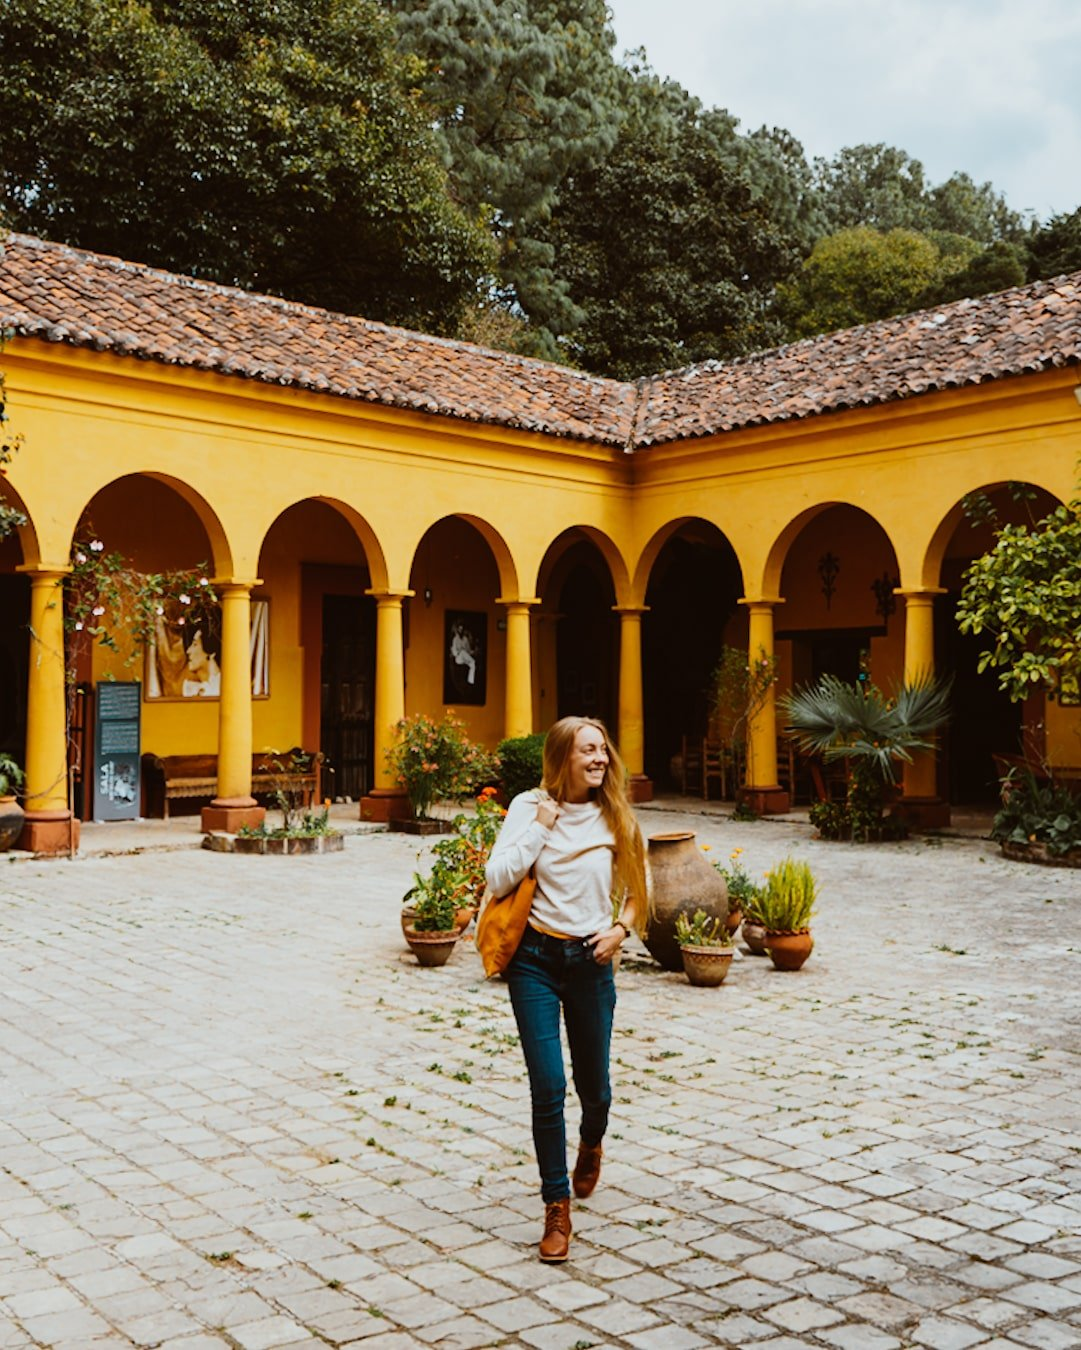 woman in Na Bolom Museum courtyard